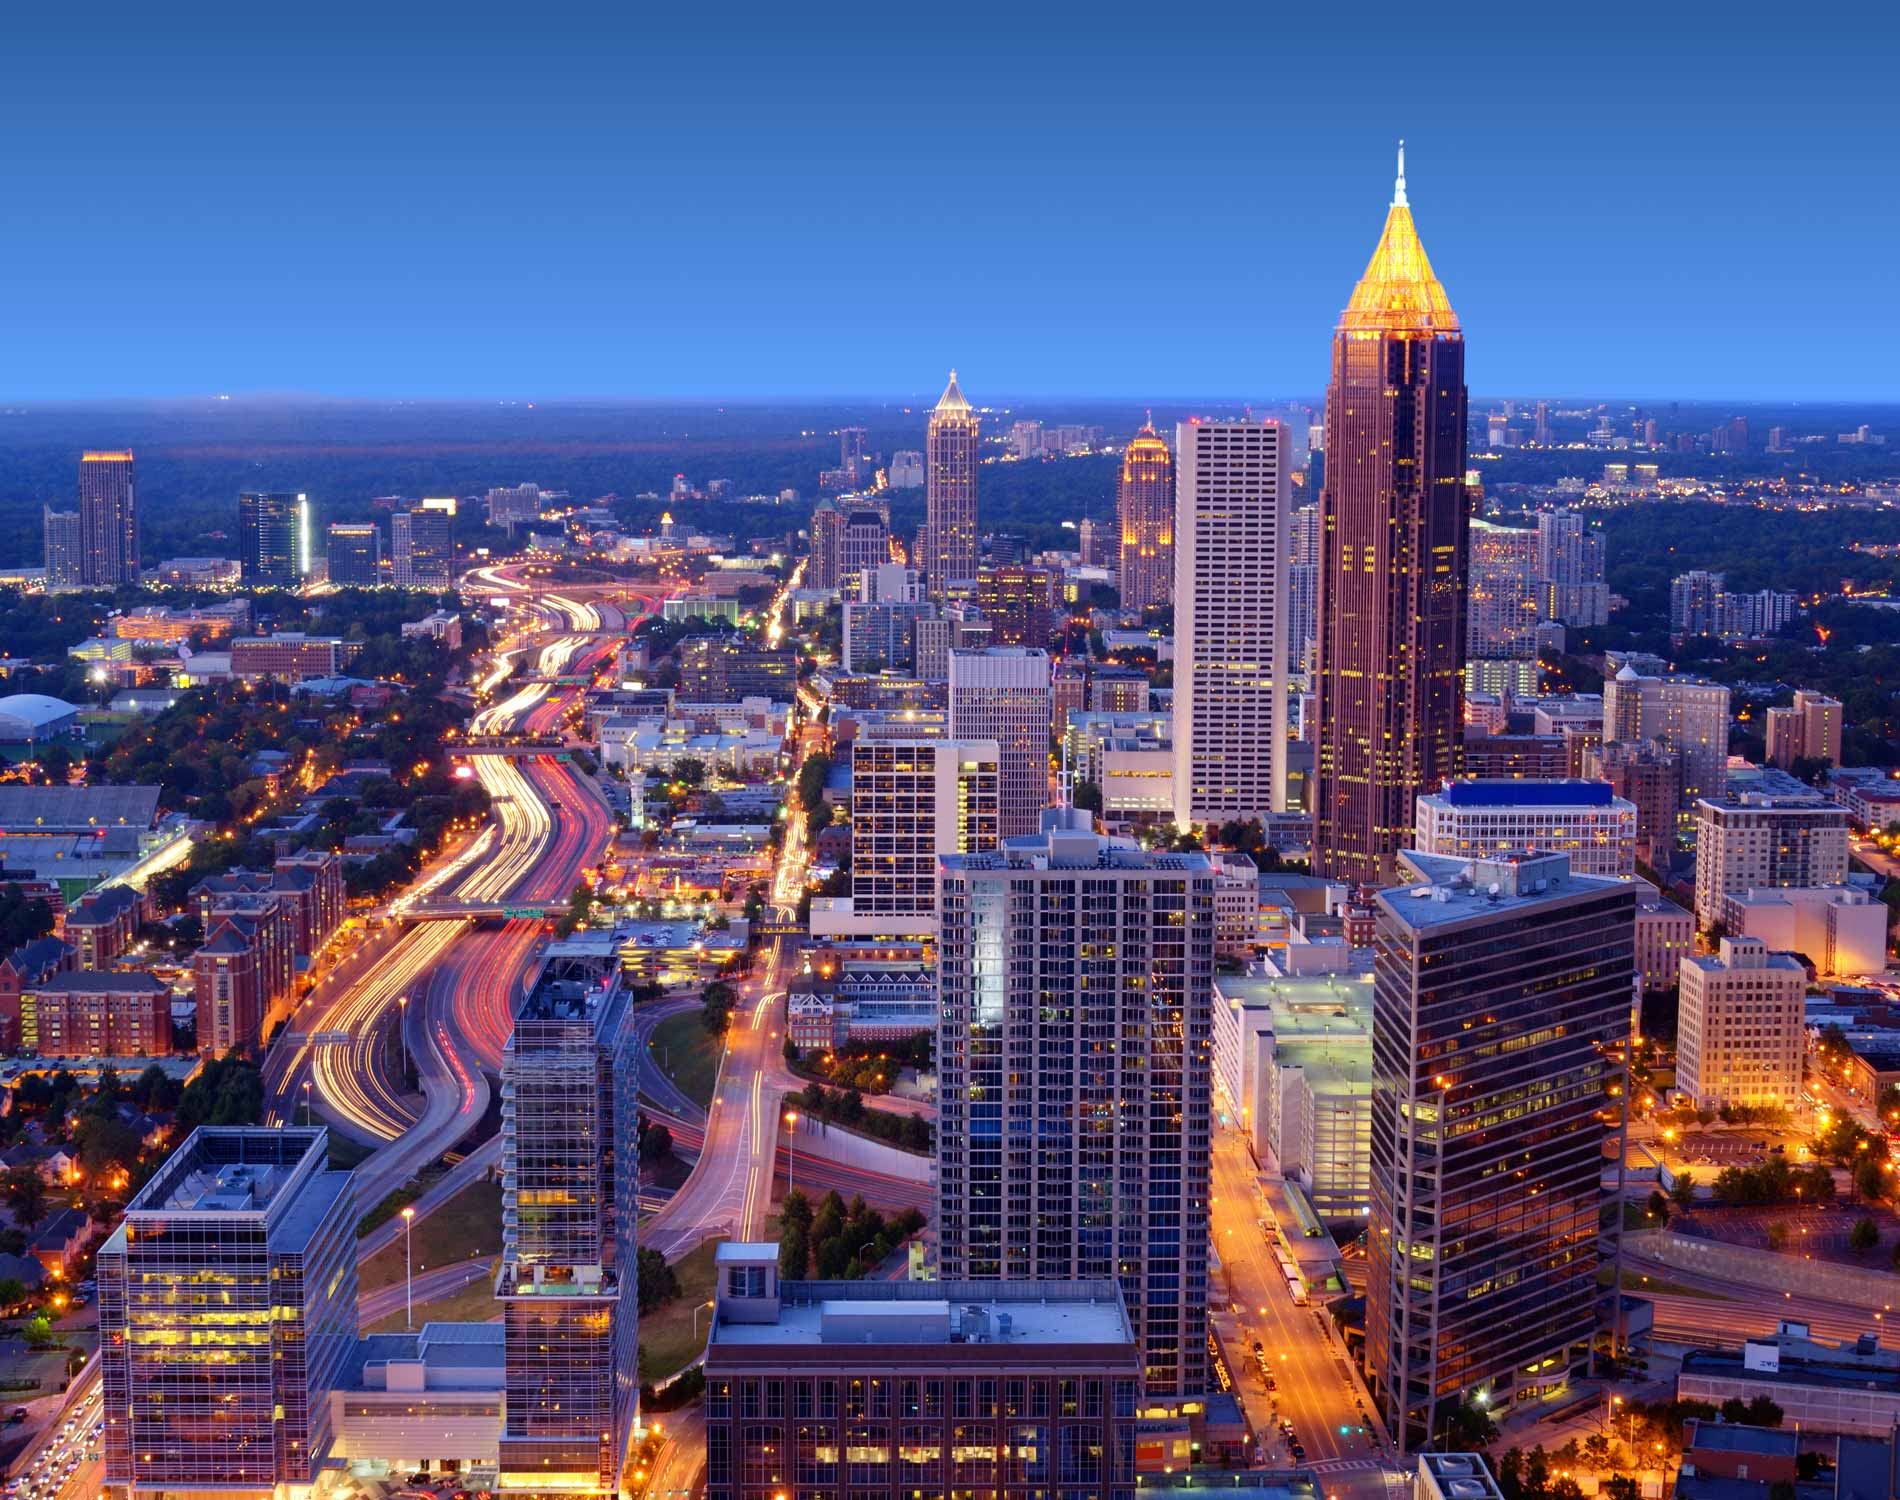 /-/media/images/website/background-images/offices/atlanta/atlanta_2.ashx